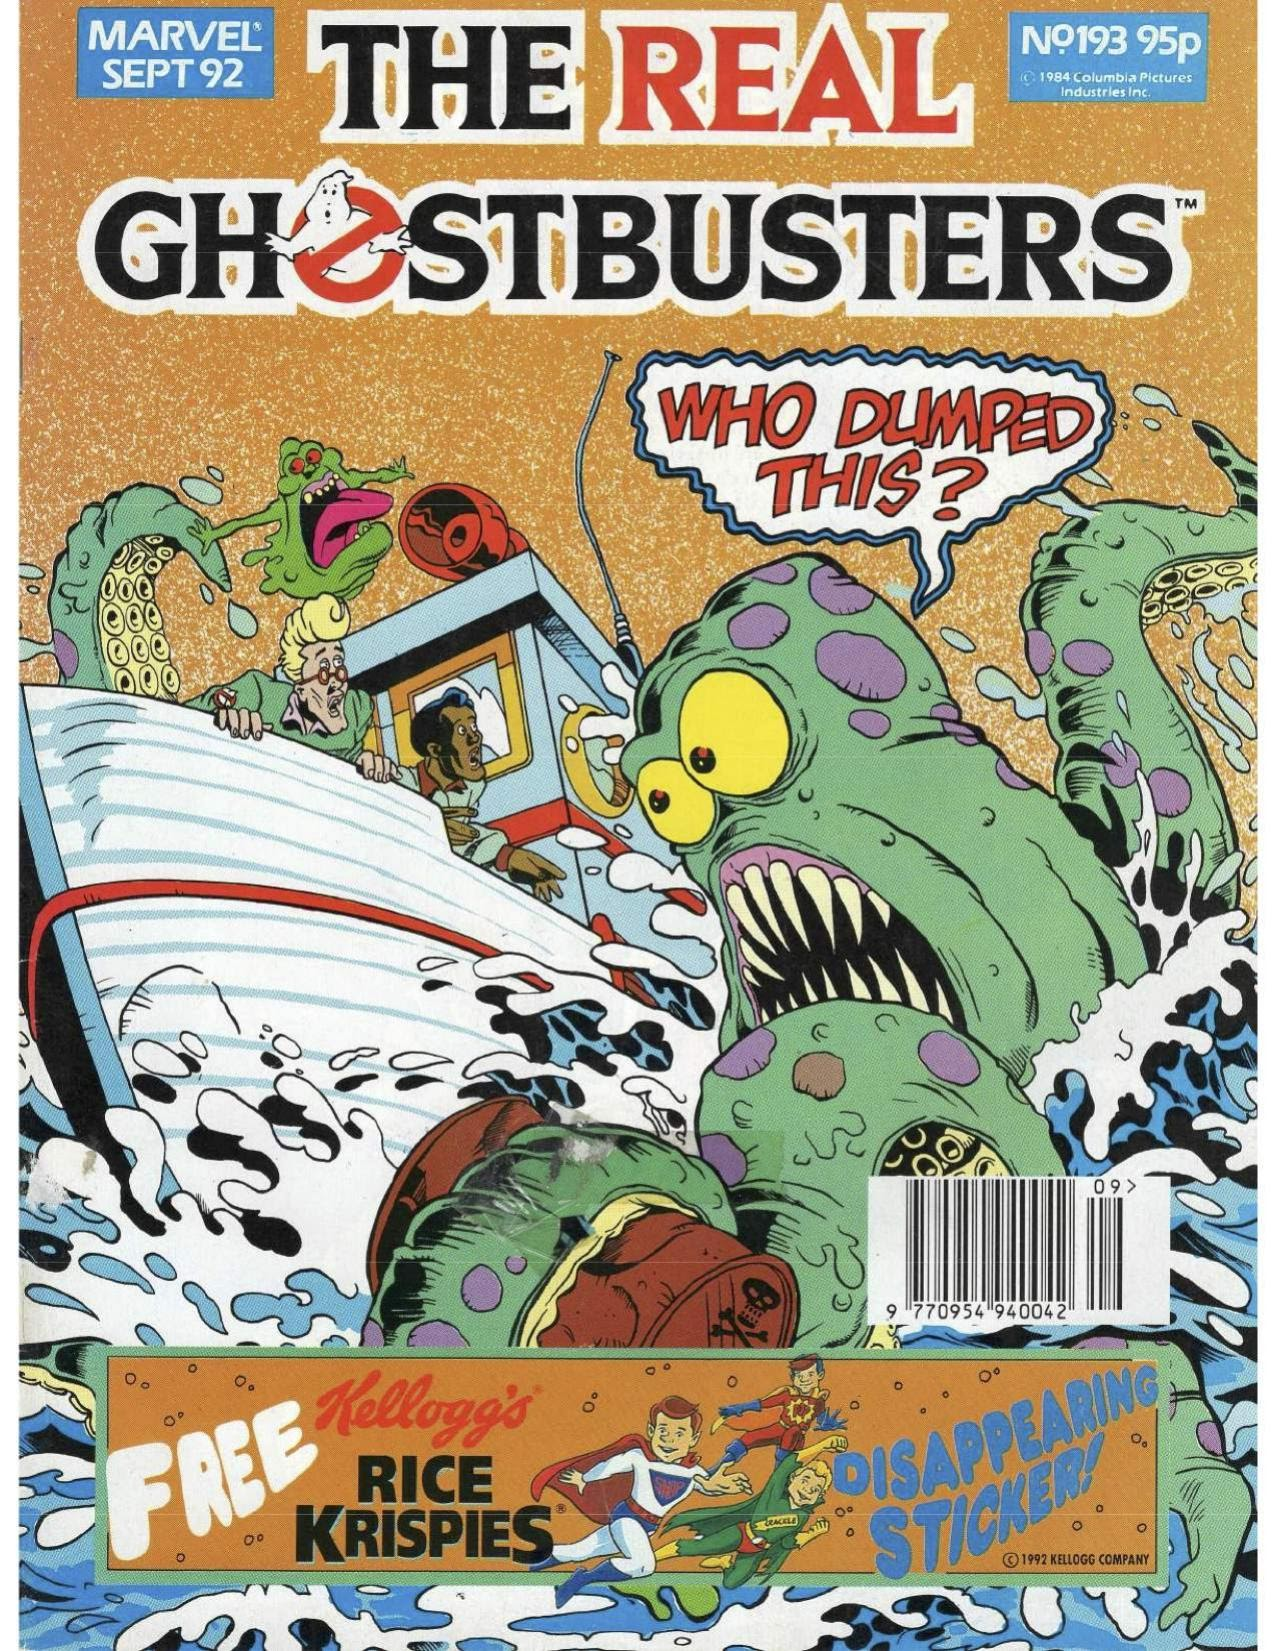 The Real Ghostbusters 193 Page 1